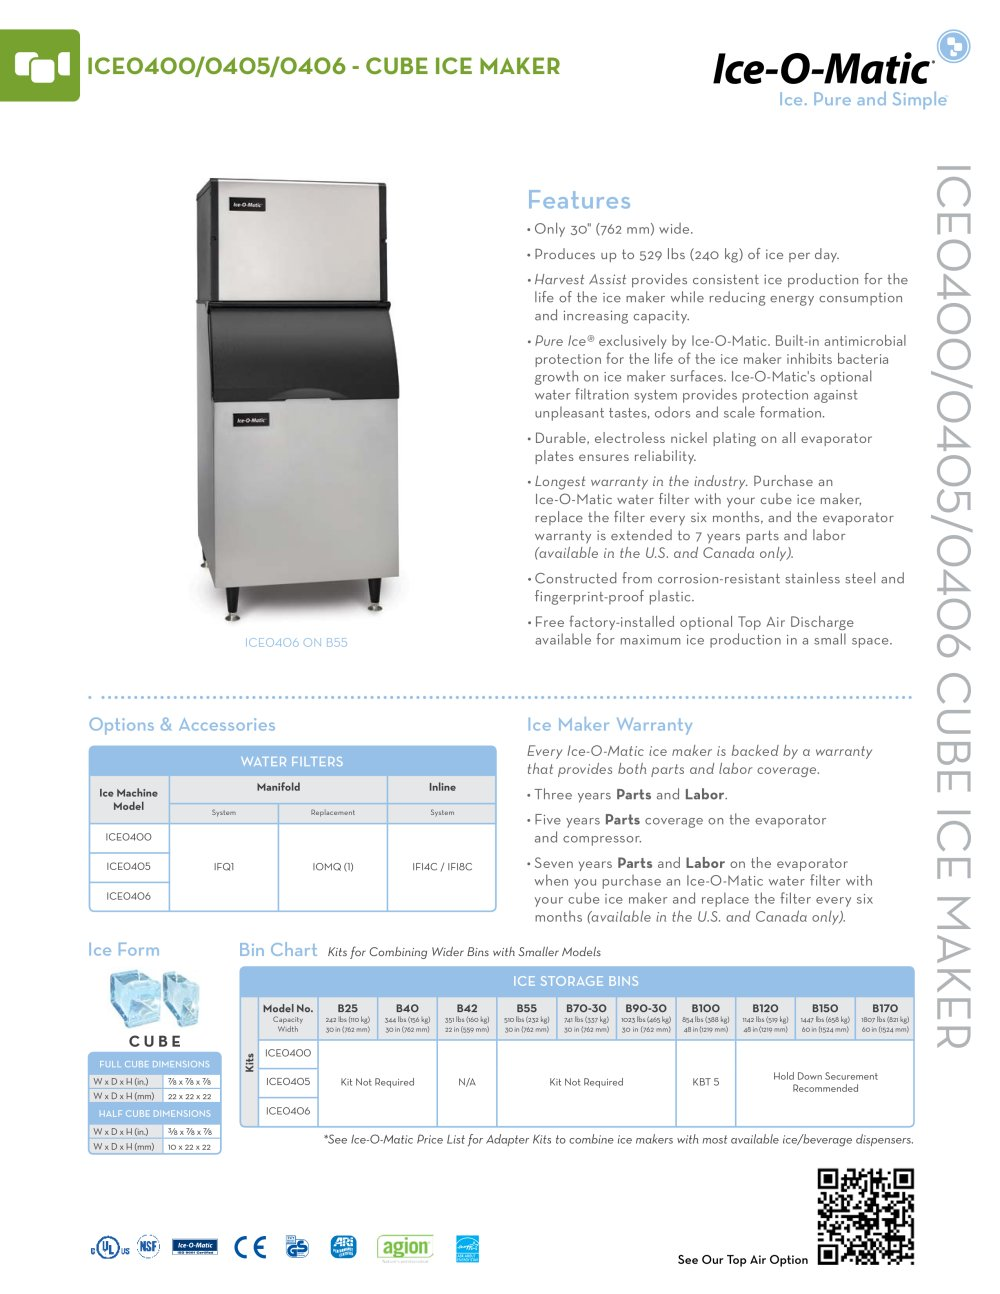 Ice0400 Modular Cube Ice Machine O Matic Pdf Catalogues Wiring Diagram Flake 1 2 Pages